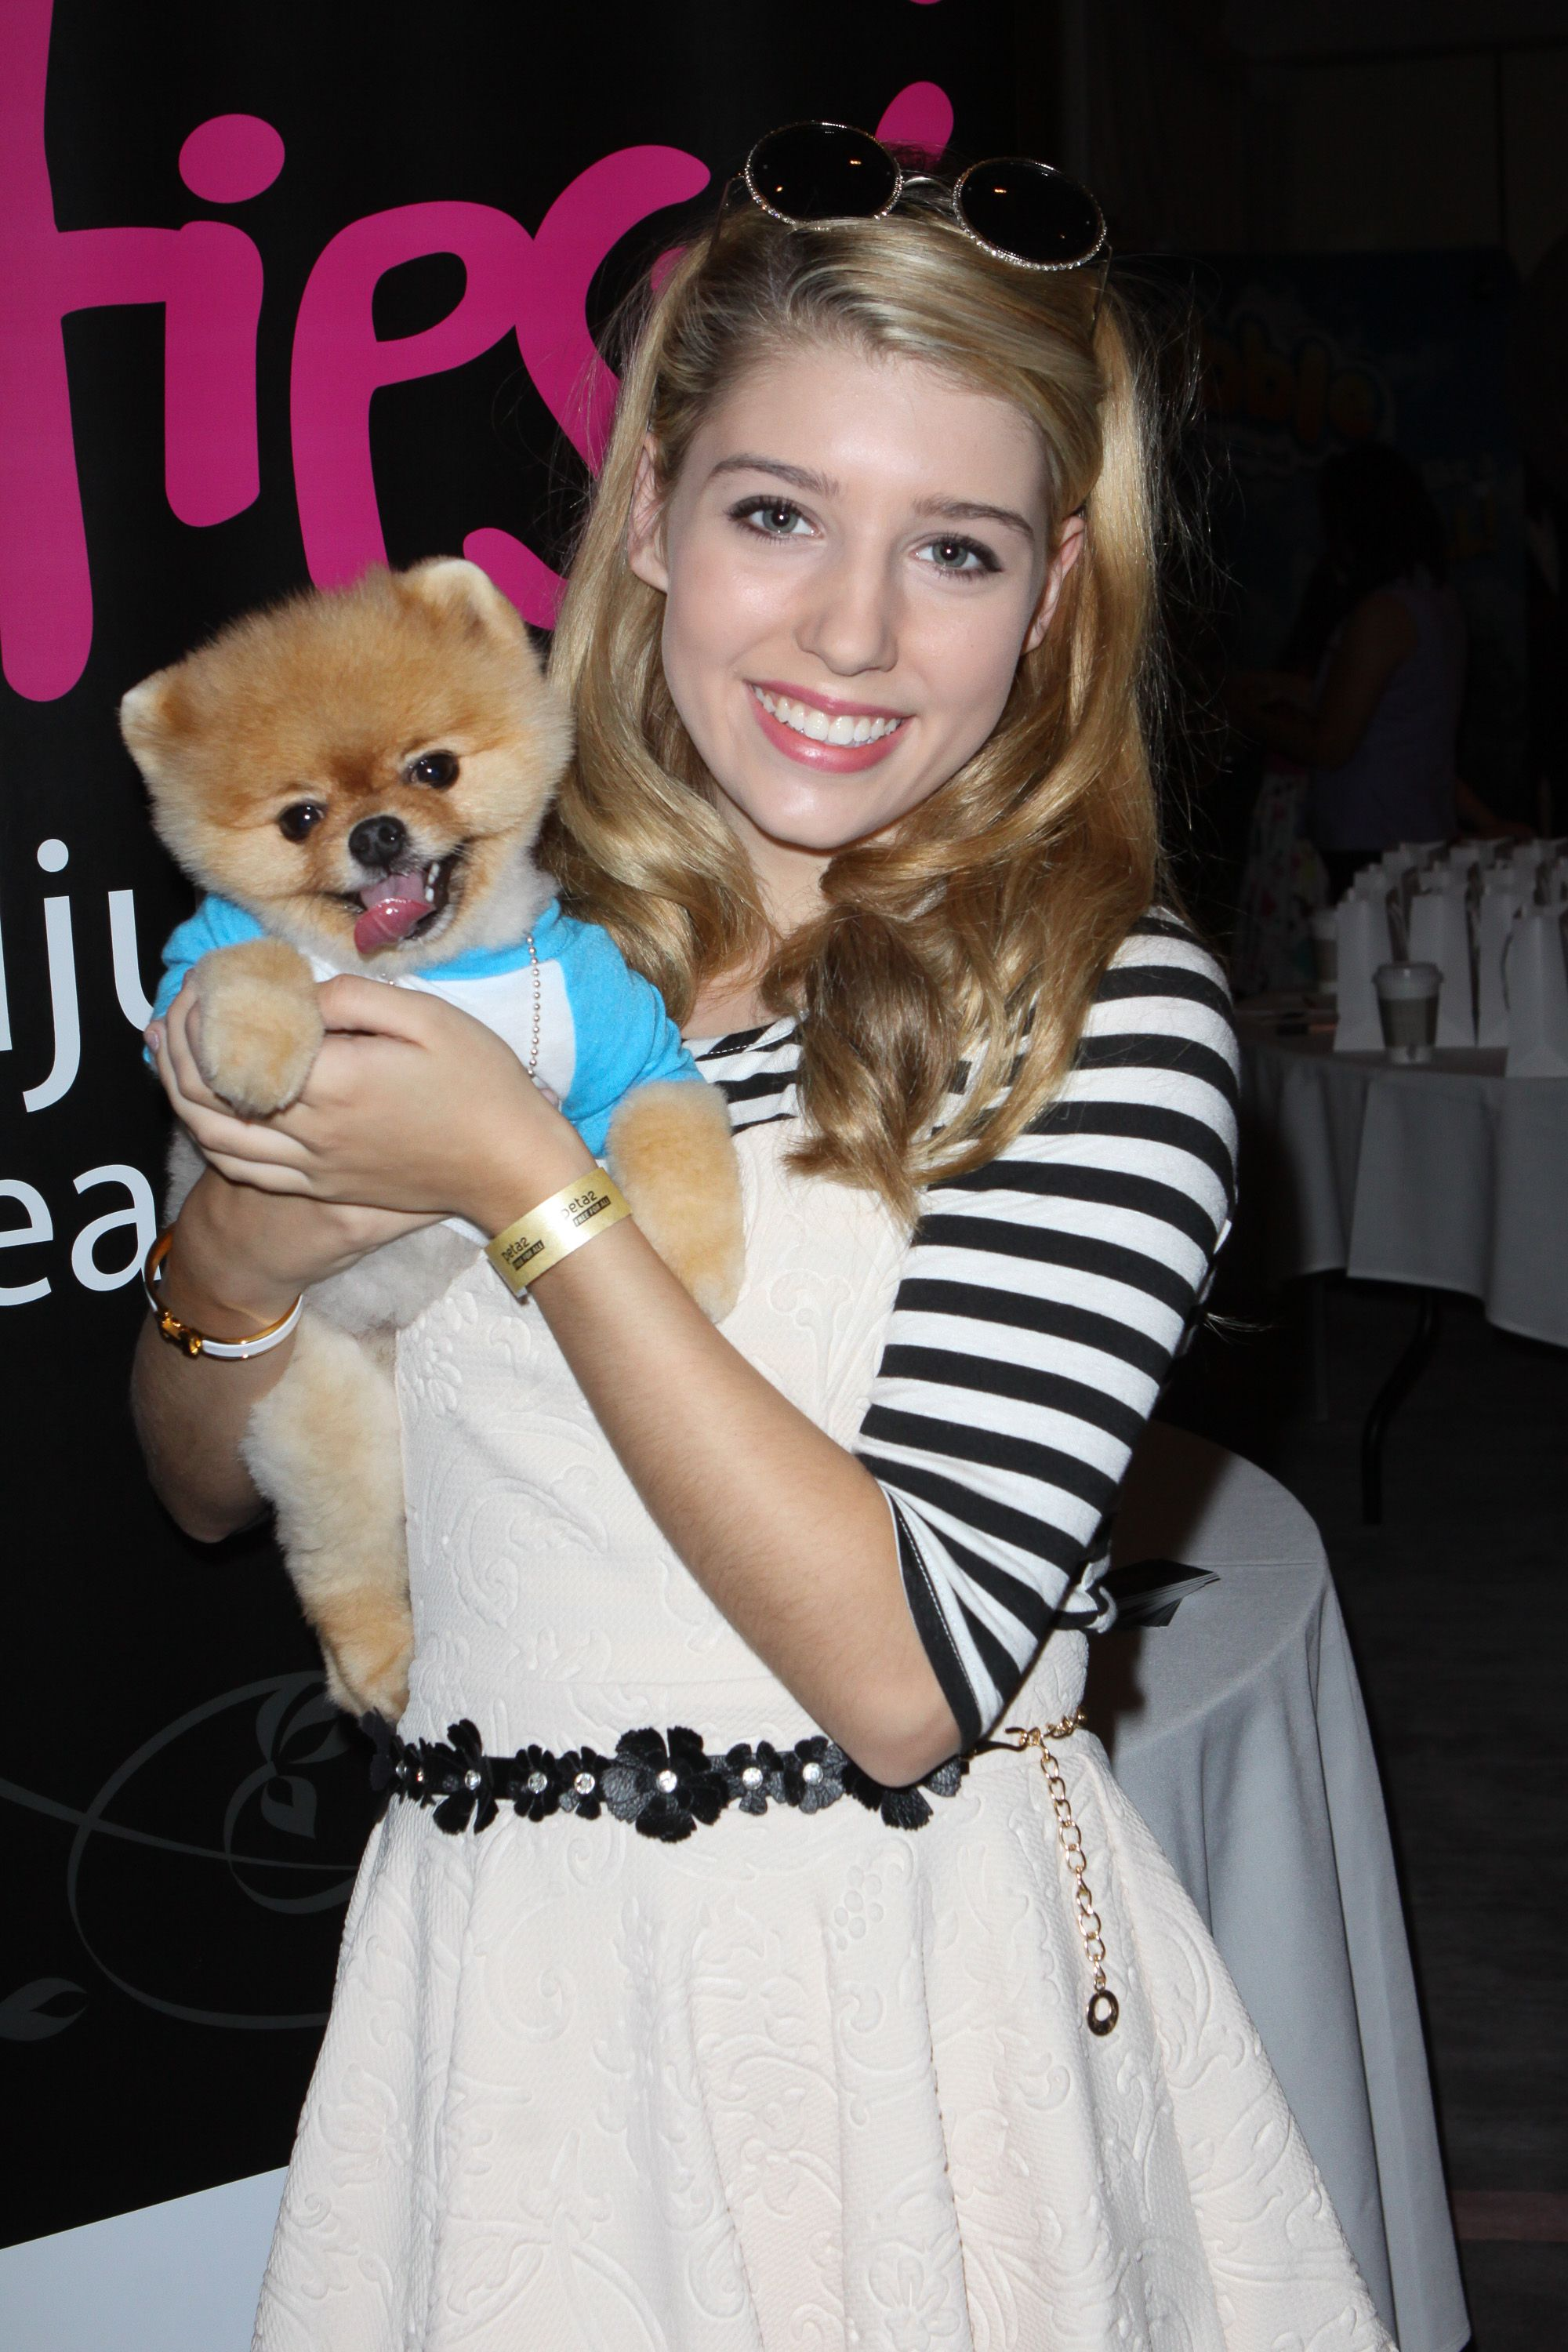 Paris Smith, Jiff Pom attended the Red carpet Events LA Luxury Gift Style Lounge in Honor of 2014  Teen Choice Awards for Nominees and Presenters